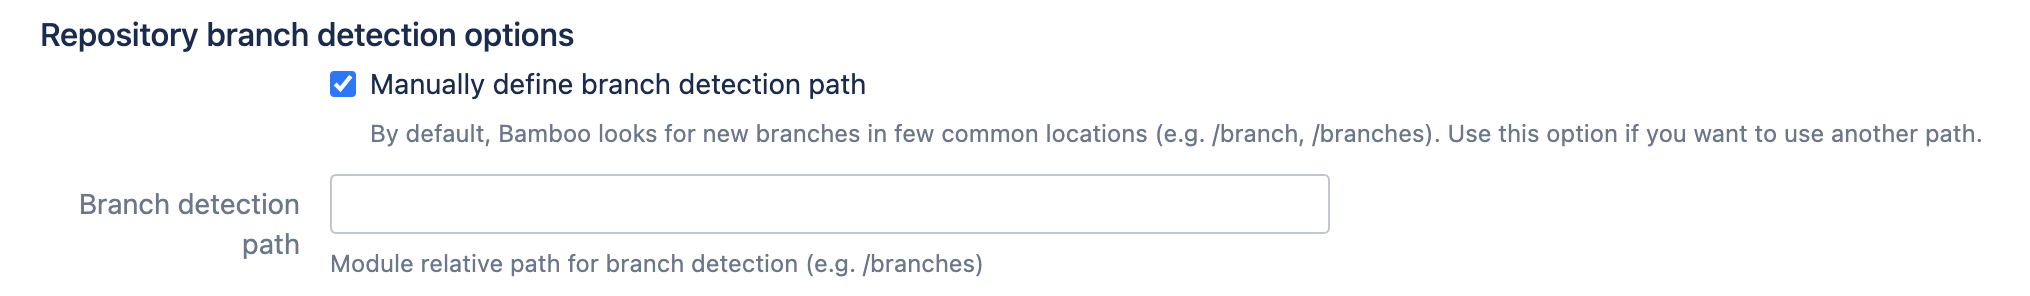 Repository branch detection options